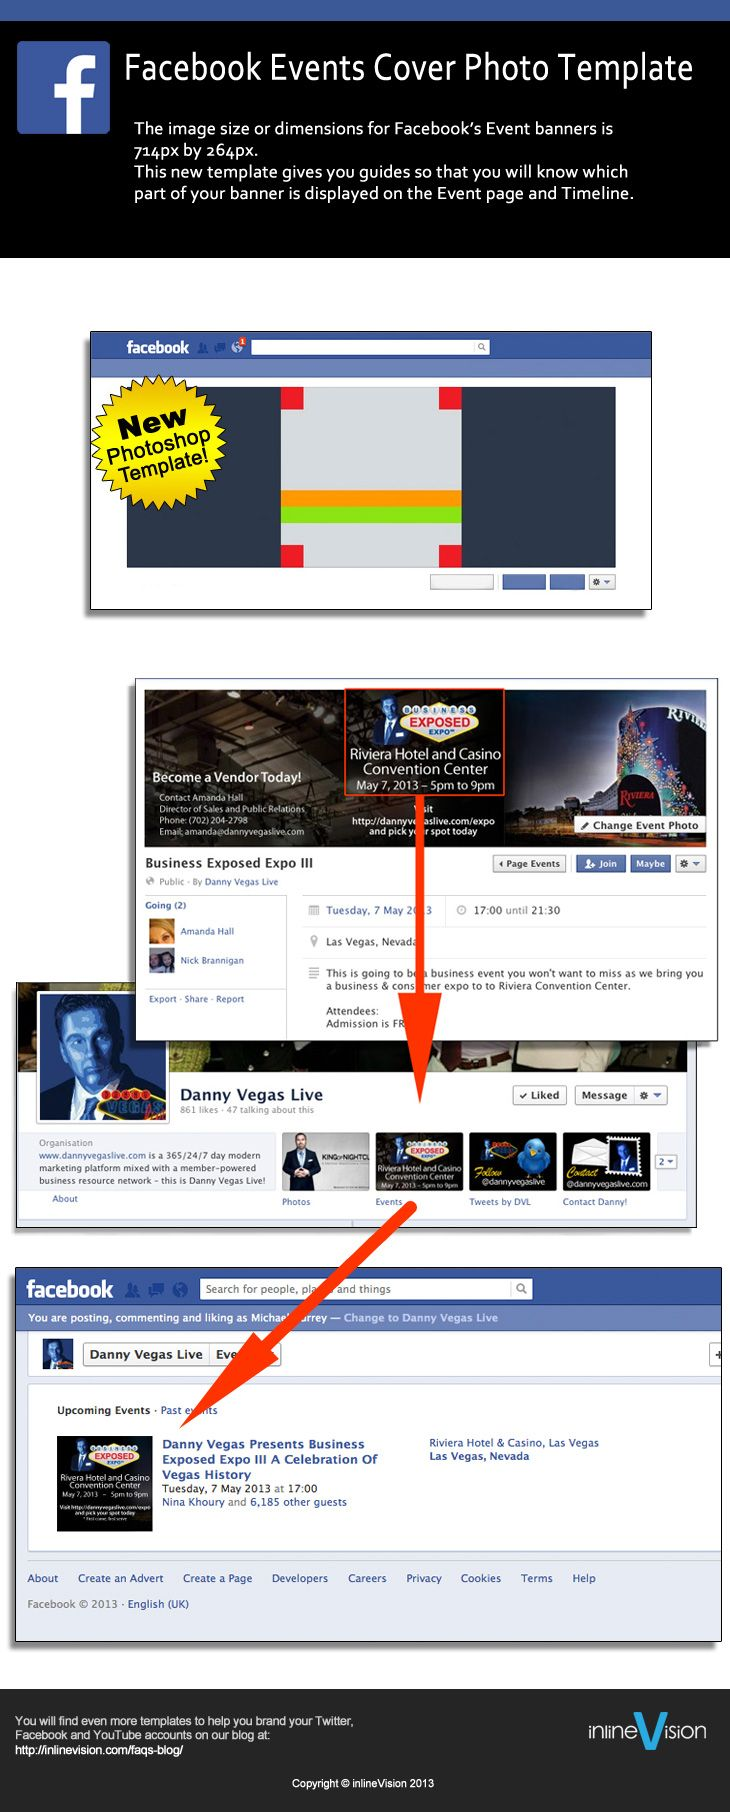 facebook event banner template the image size or dimensions for